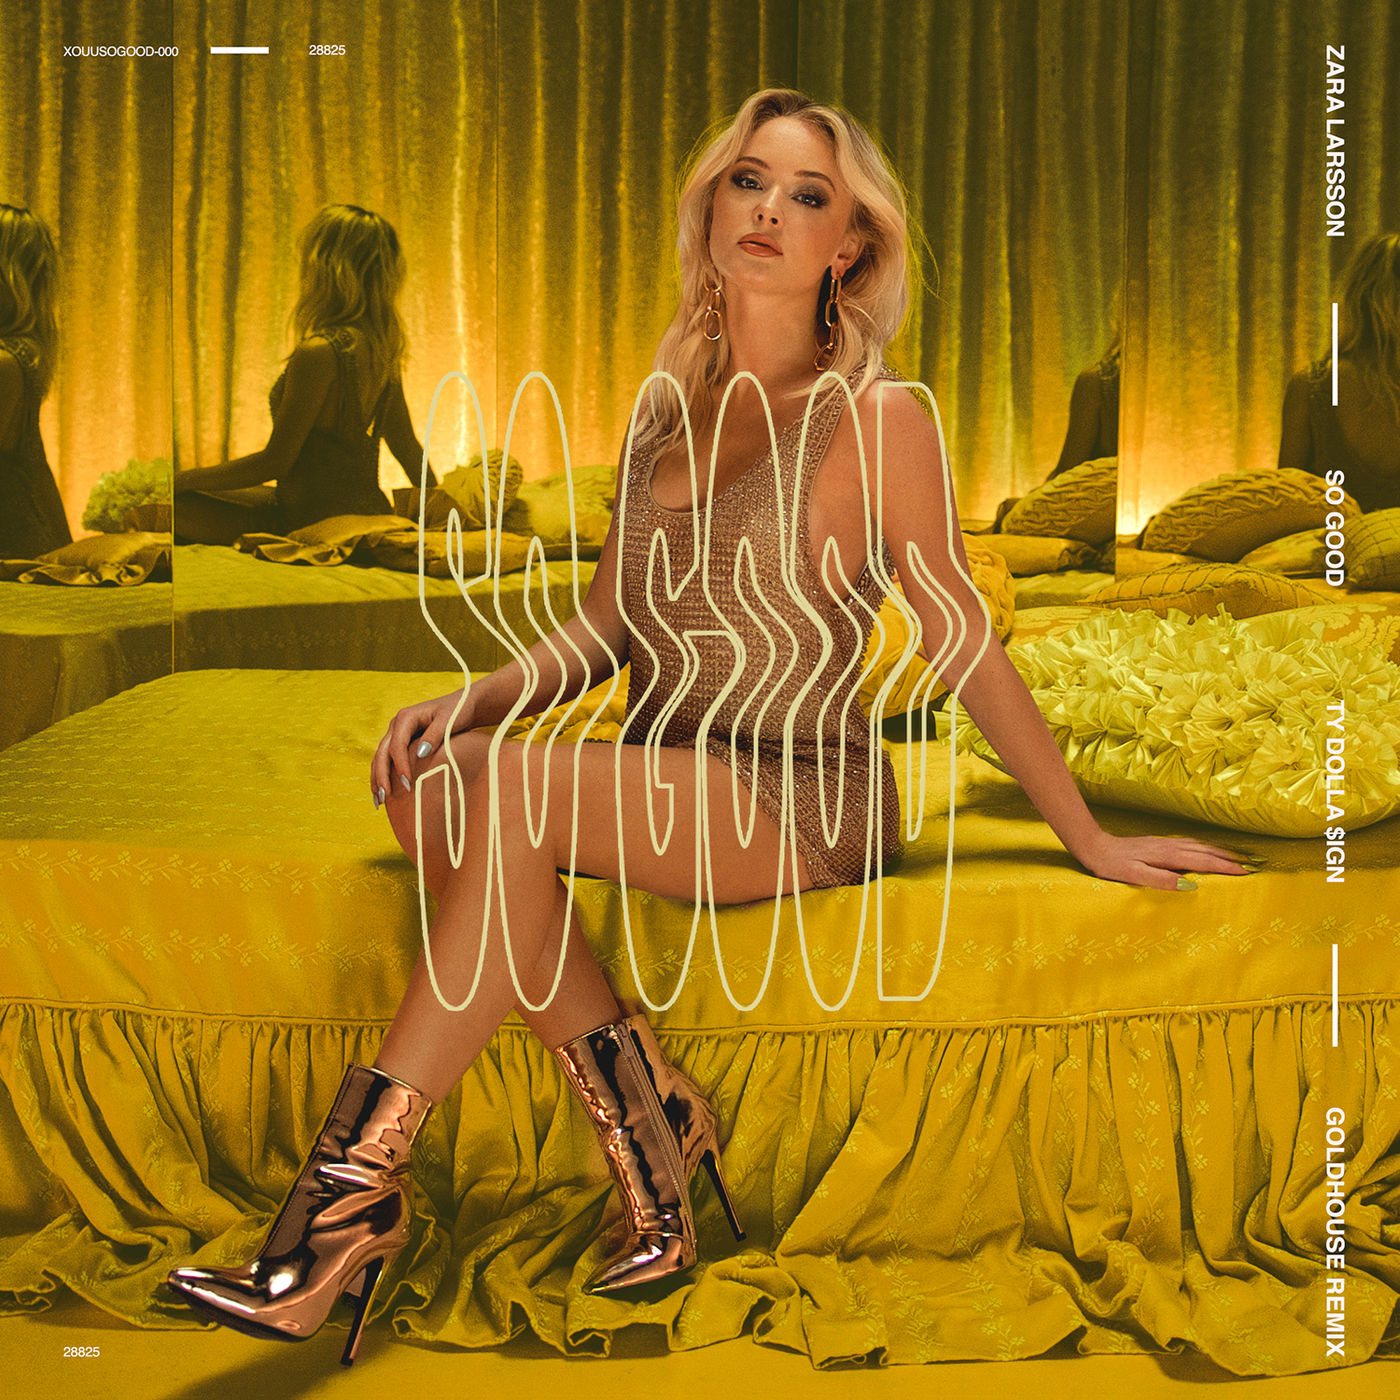 Zara Larsson - So Good (GOLDHOUSE Remix) [feat. Ty Dolla $ign] - Single Cover